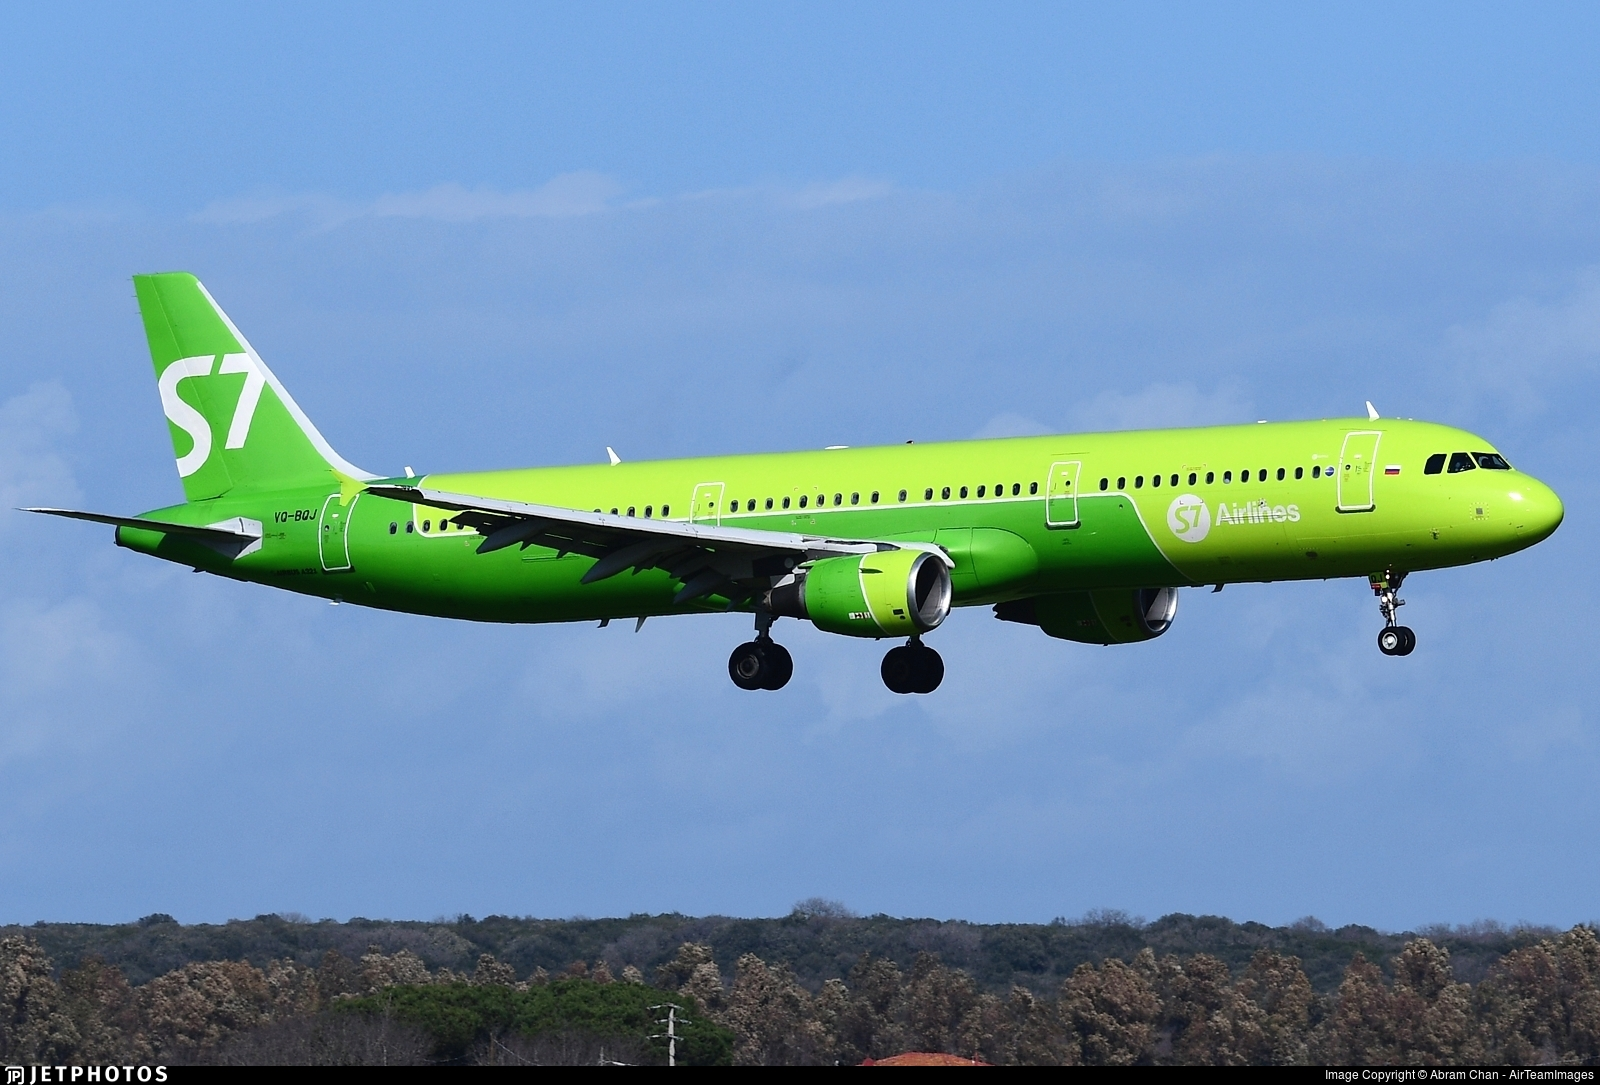 VQ-BQJ - Airbus A321-211 - S7 Airlines